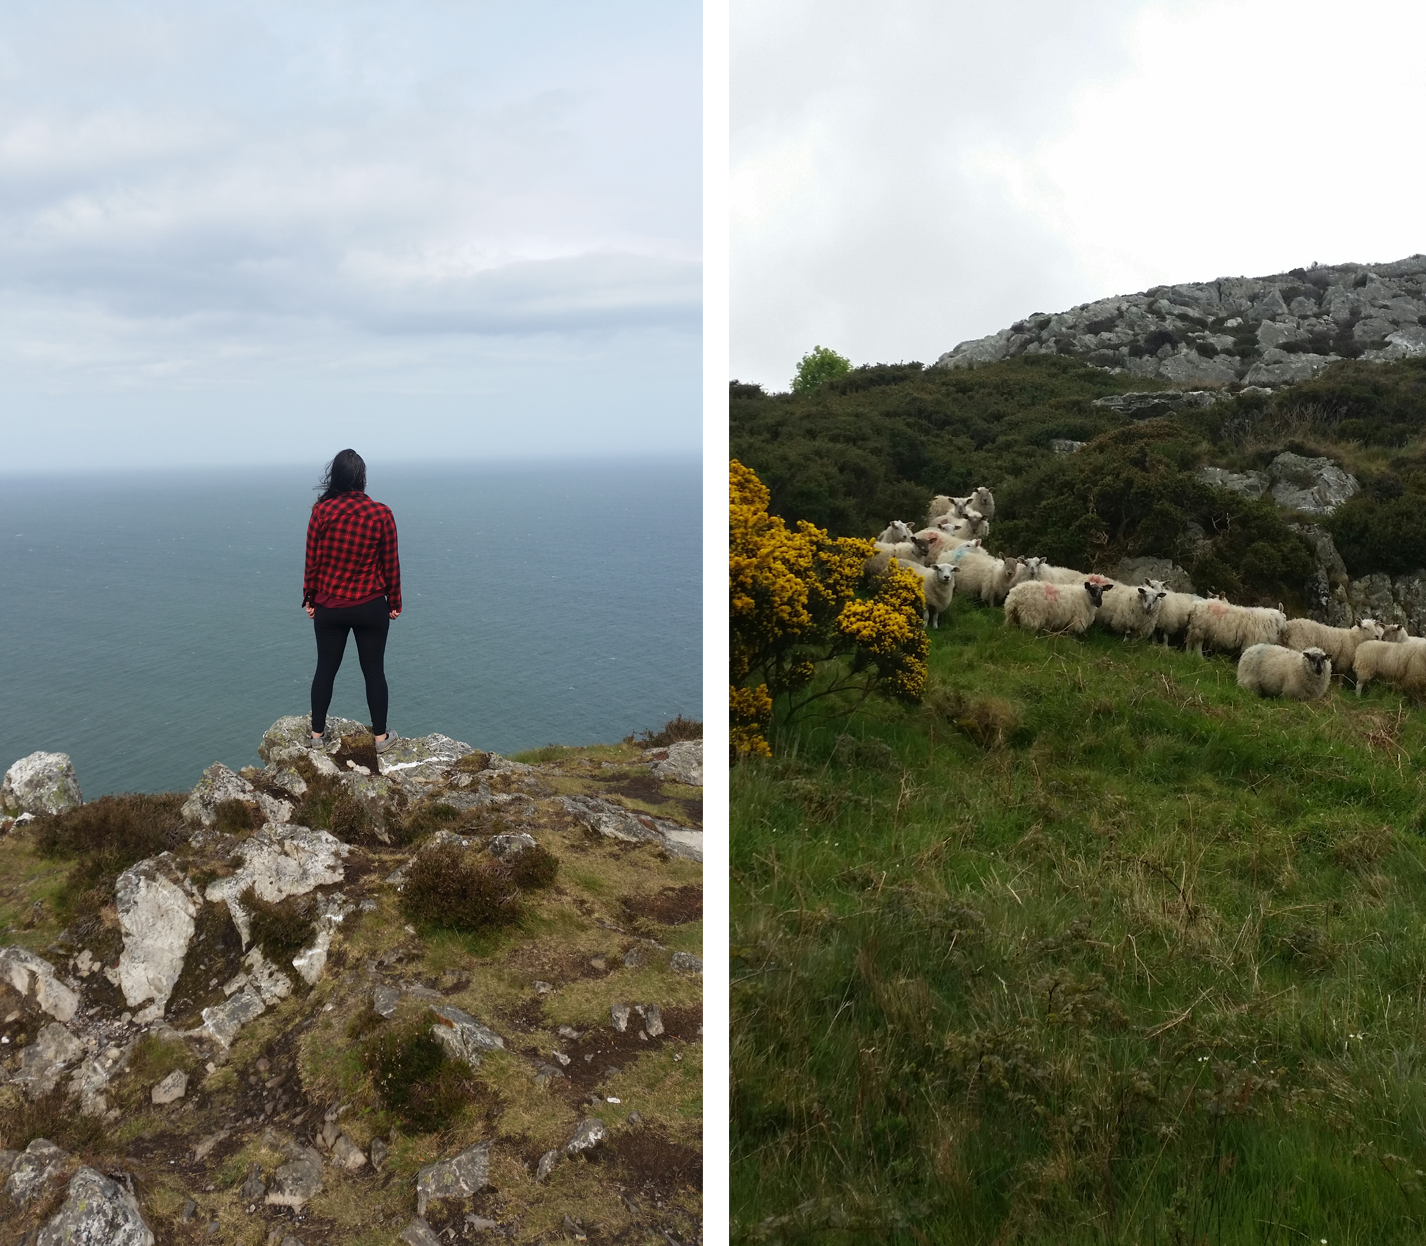 Bray is quite lovely. The sheep were so skittish though!